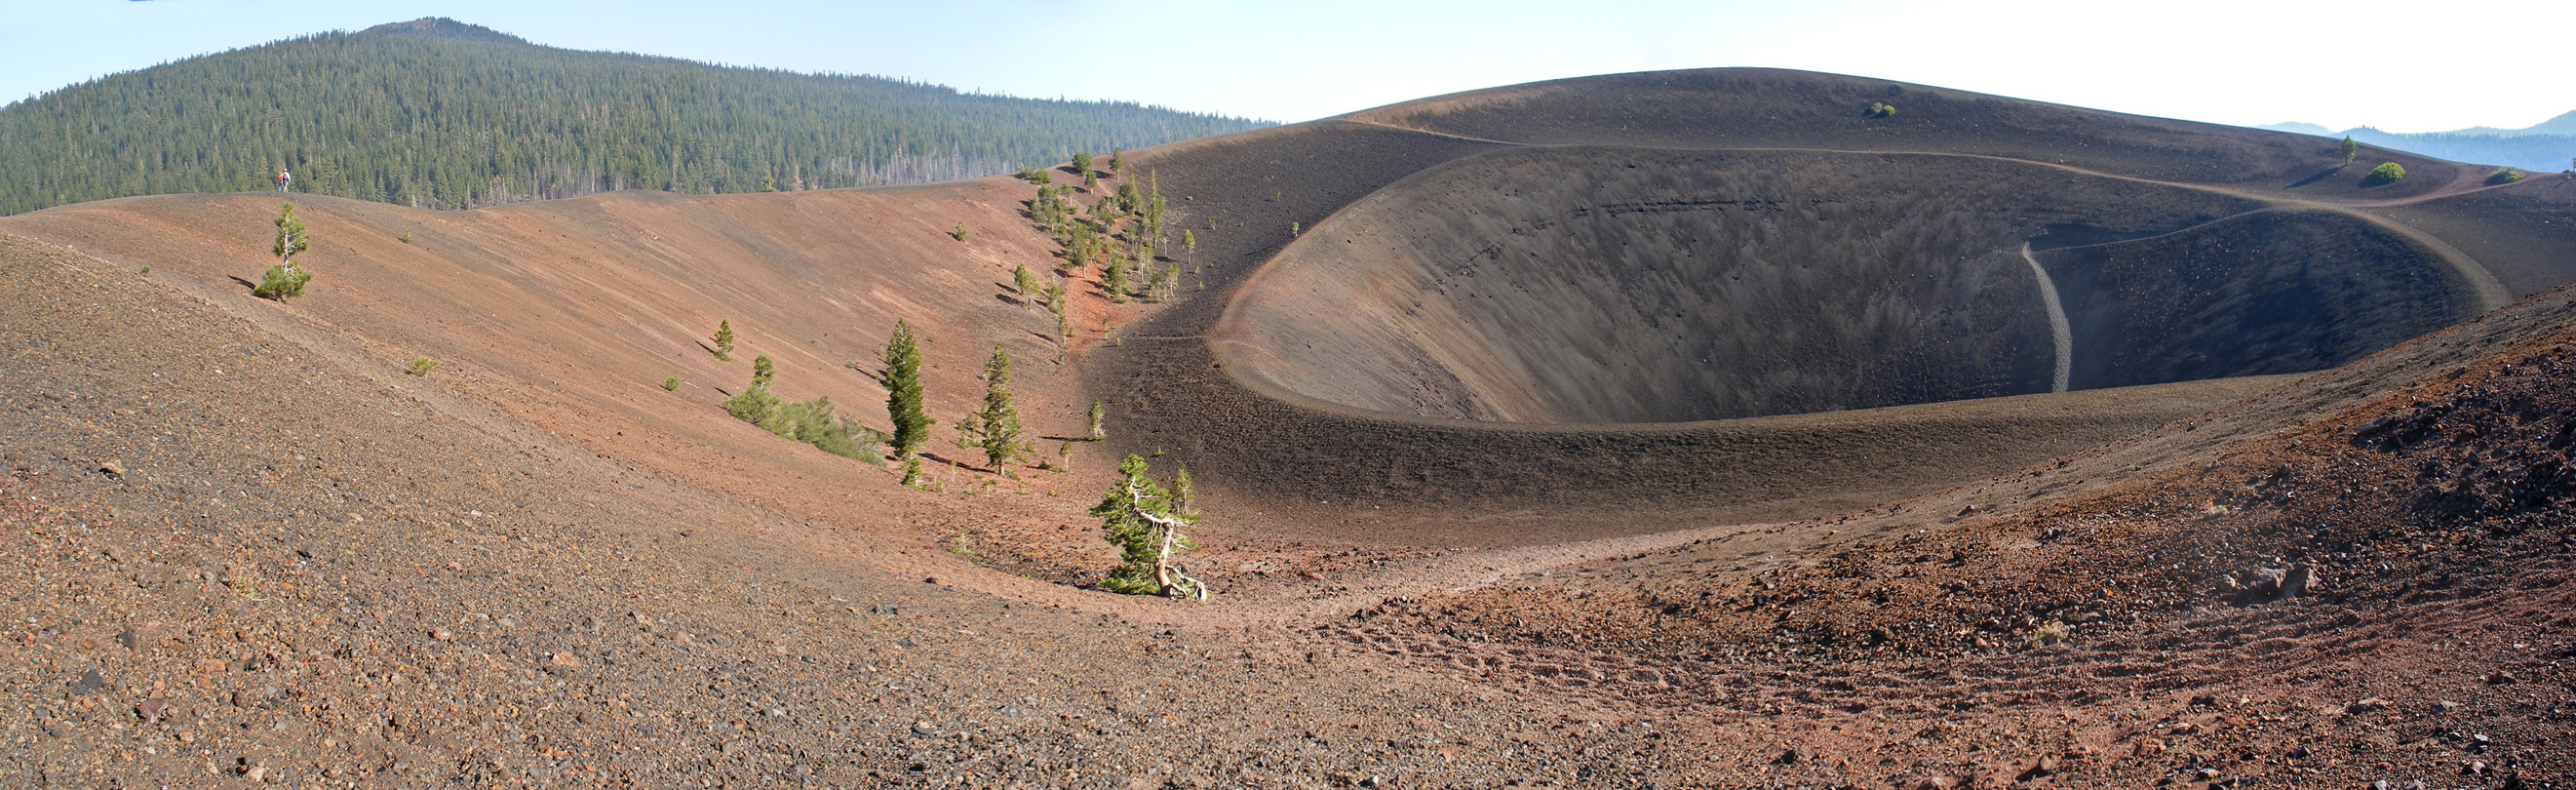 Cinder Cone, from the south rim